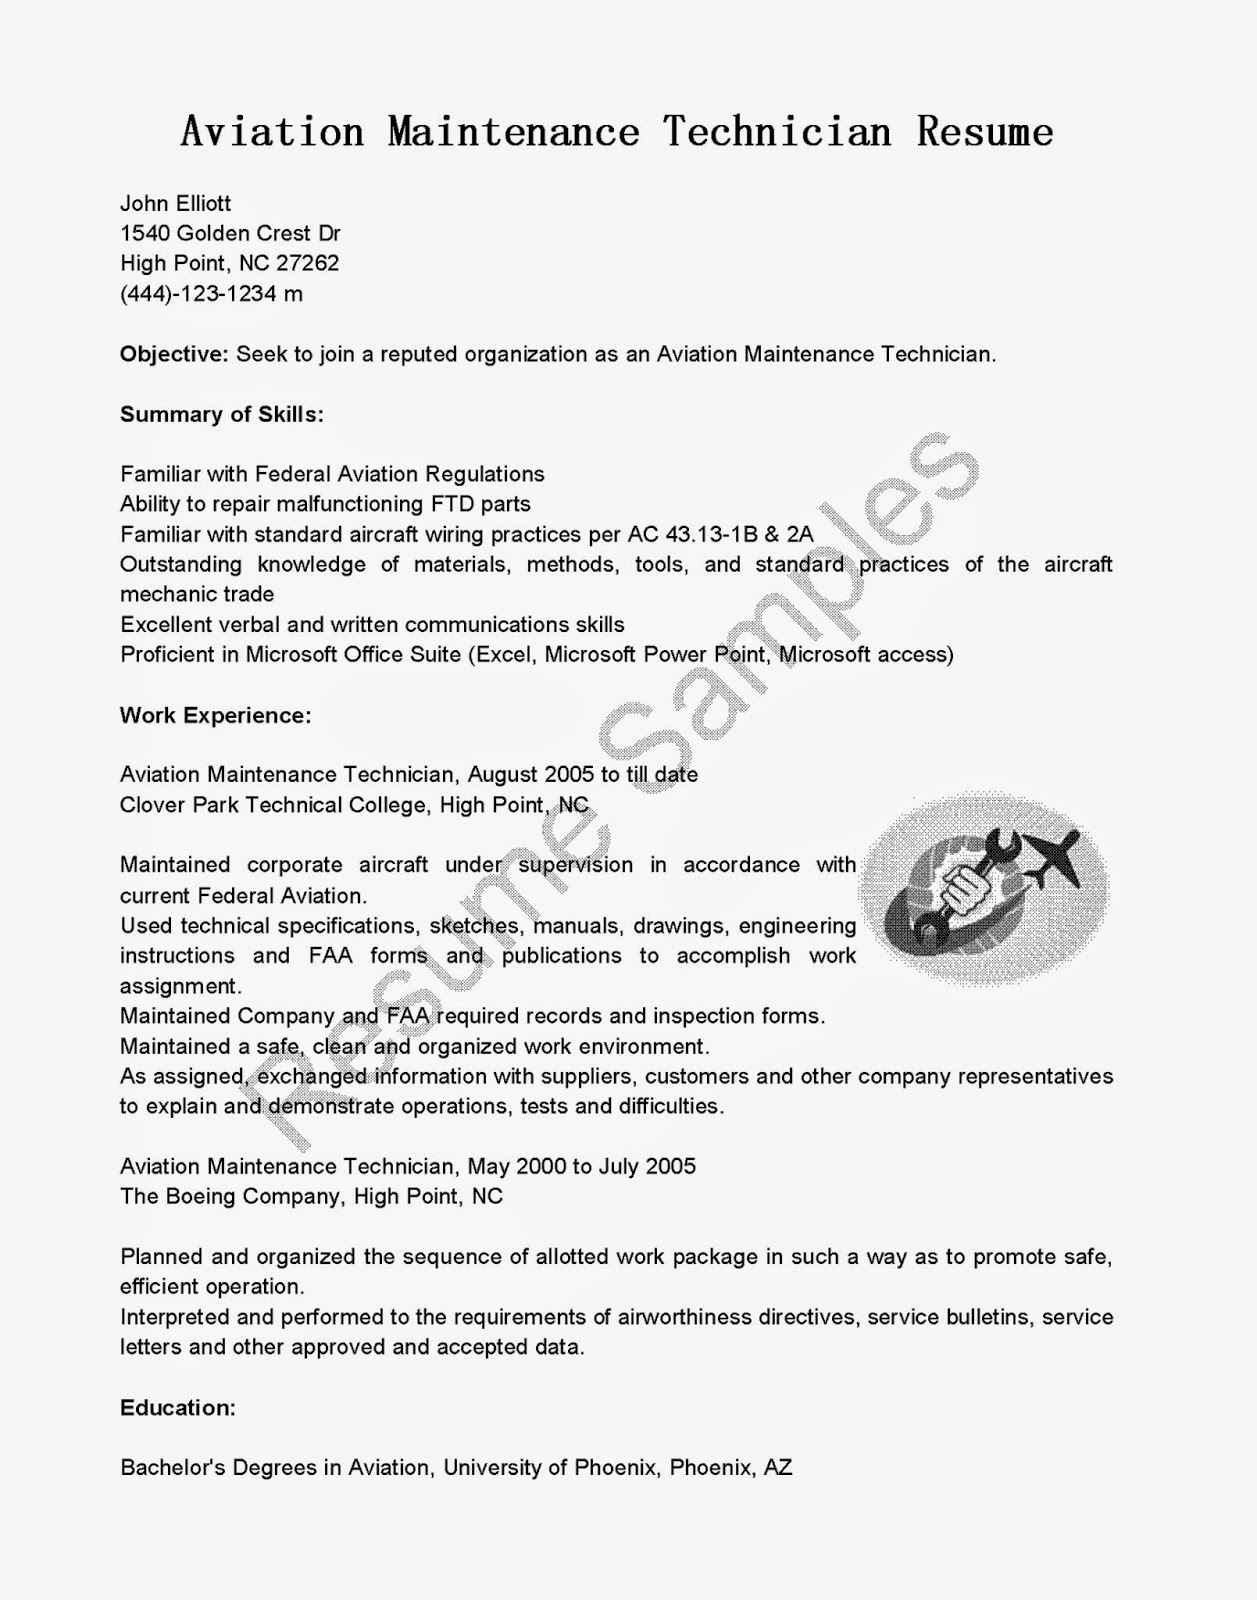 Maintenance Tech Resume Sample Resume Samples Aviation Maintenance Technician Resume Sample